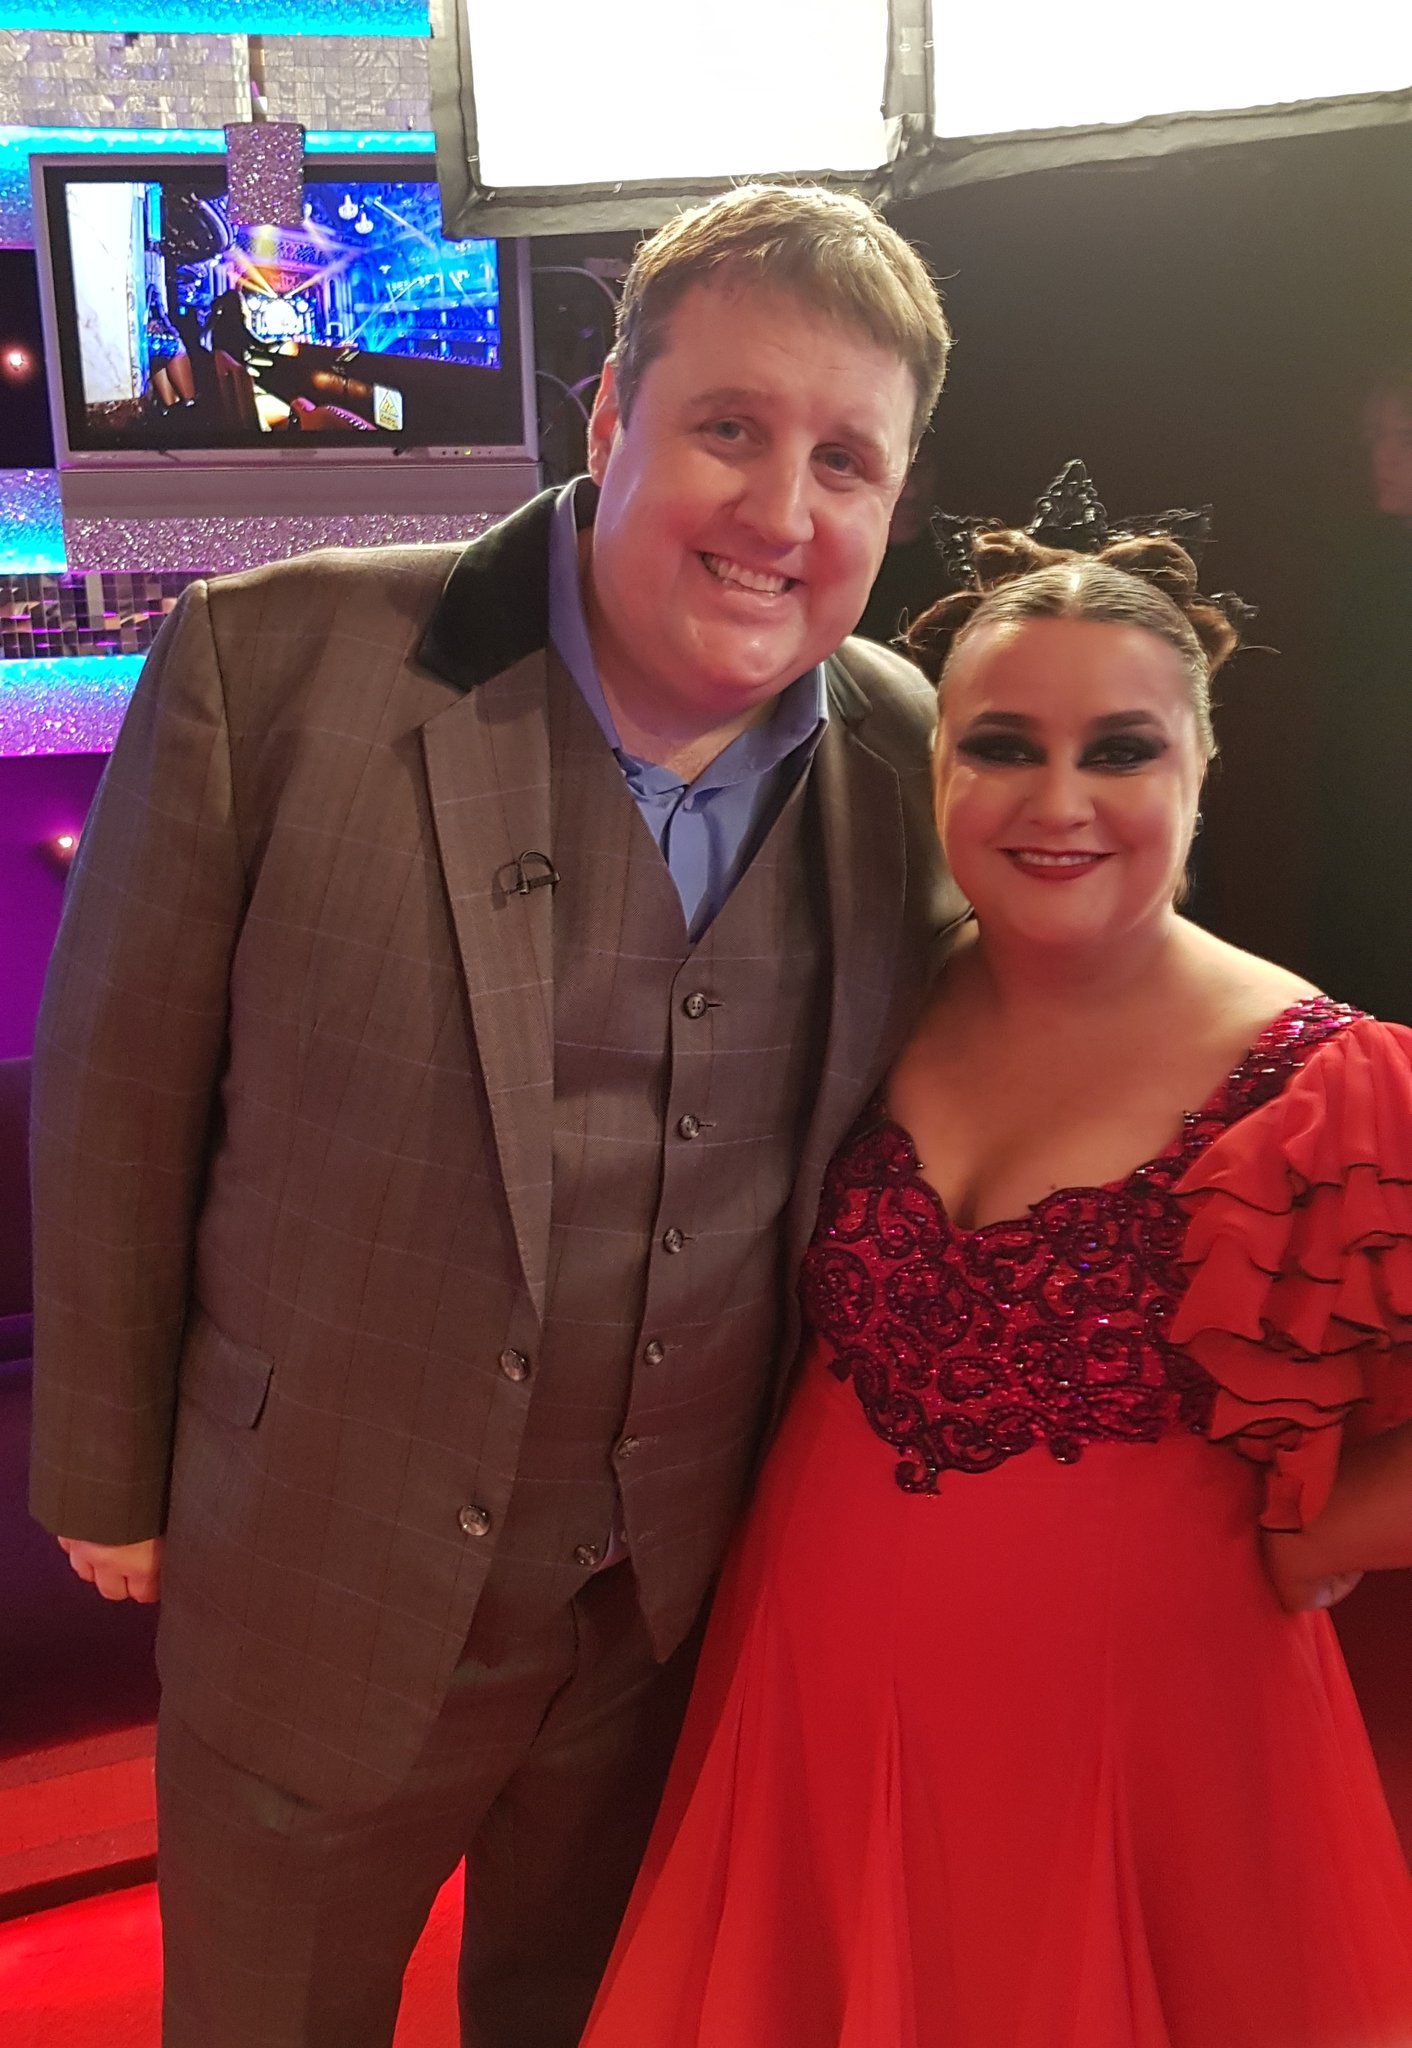 When one comedy legend meets another comedy legend @peterkay_co_uk @SusanCalman  #Strictly #Blackpool https://t.co/Mvedi3lbwC